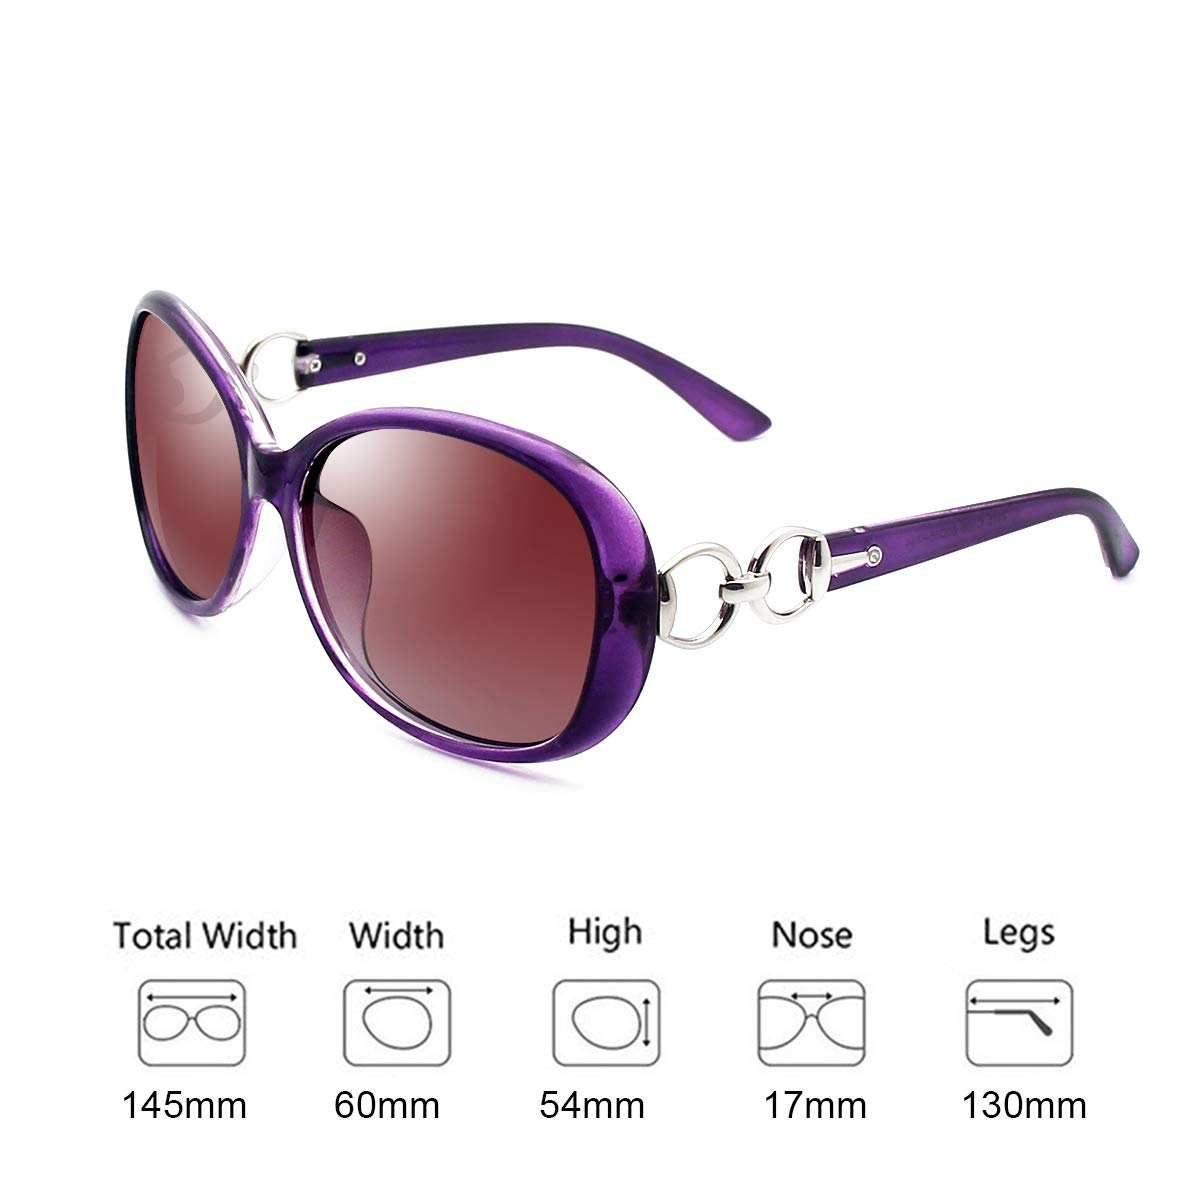 VeBrellen Luxury Women Polarized Sunglasses Retro Eyewear Oversized Goggles Eyeglasses